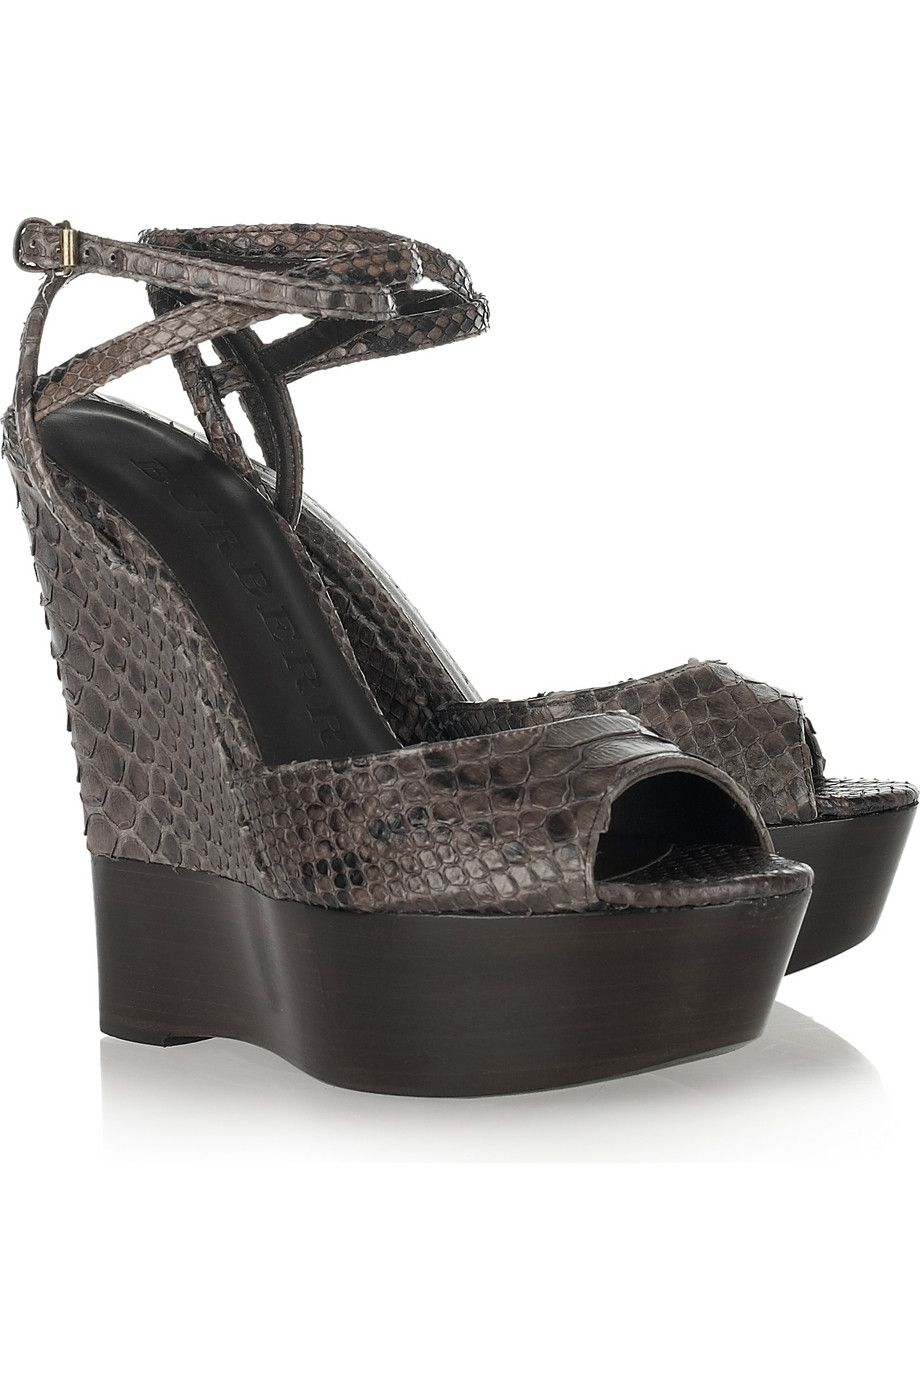 3b327c566ed Discount designer clothes for women sale. Python wedge sandals by Burberry